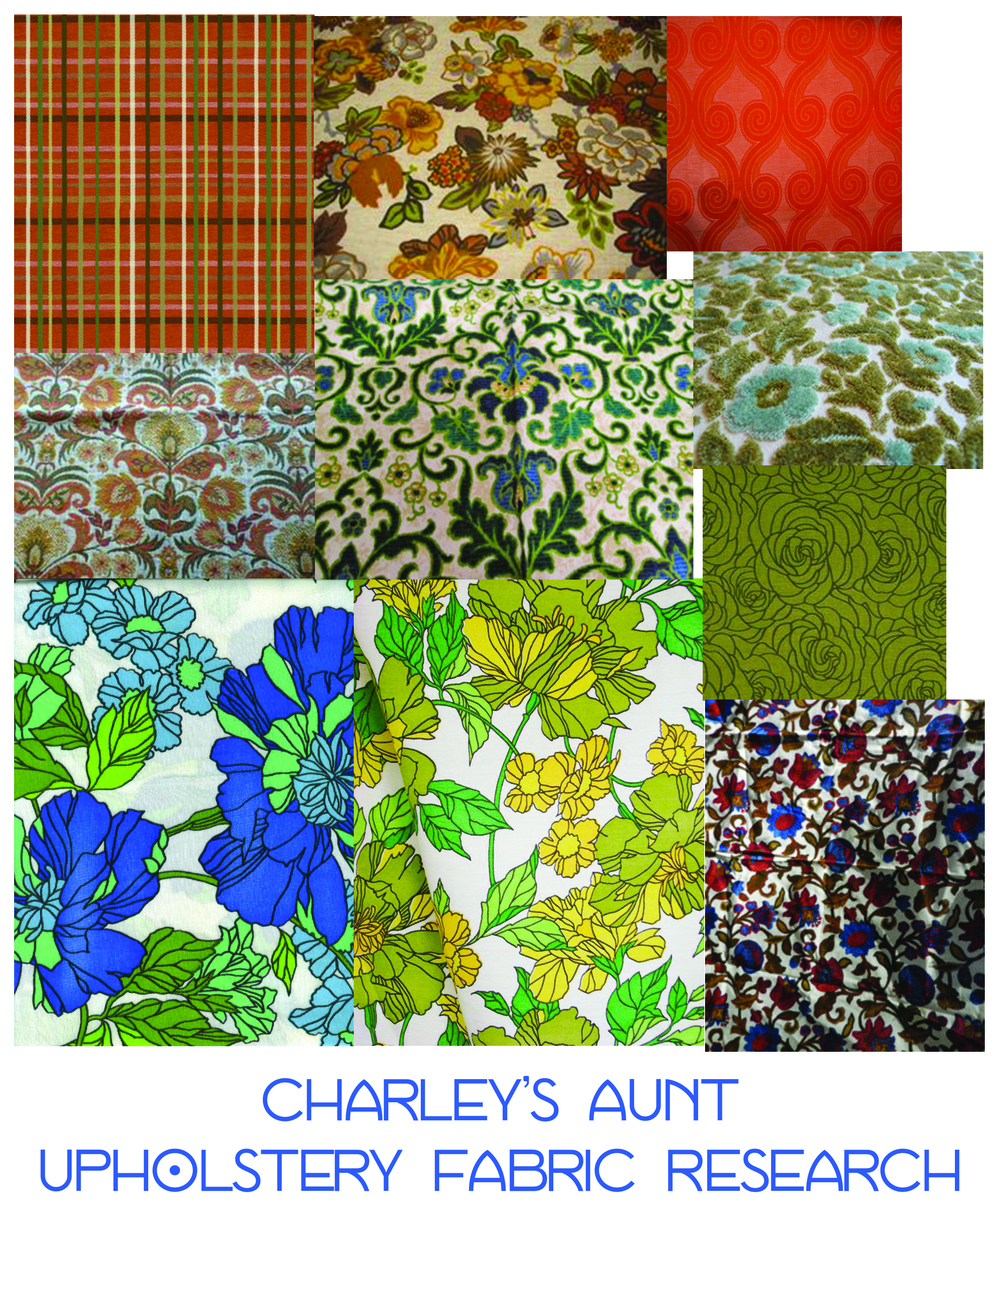 charleys_aunt_fabric_collage.jpg